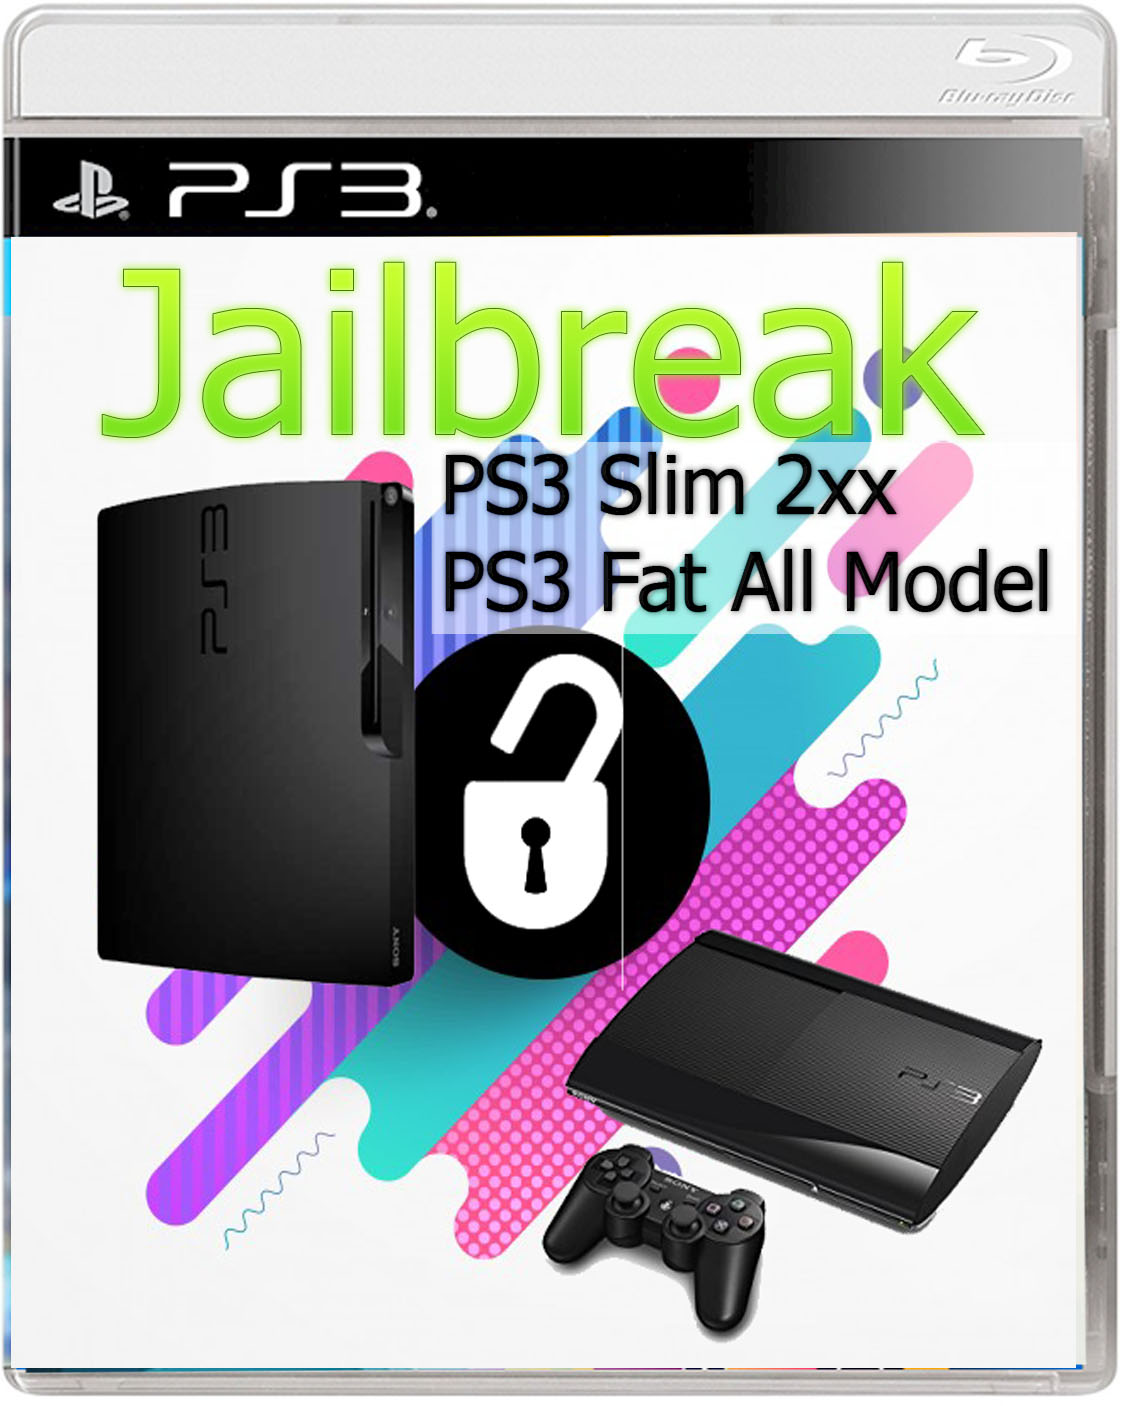 how to play ps2 games on ps3 without jailbreak